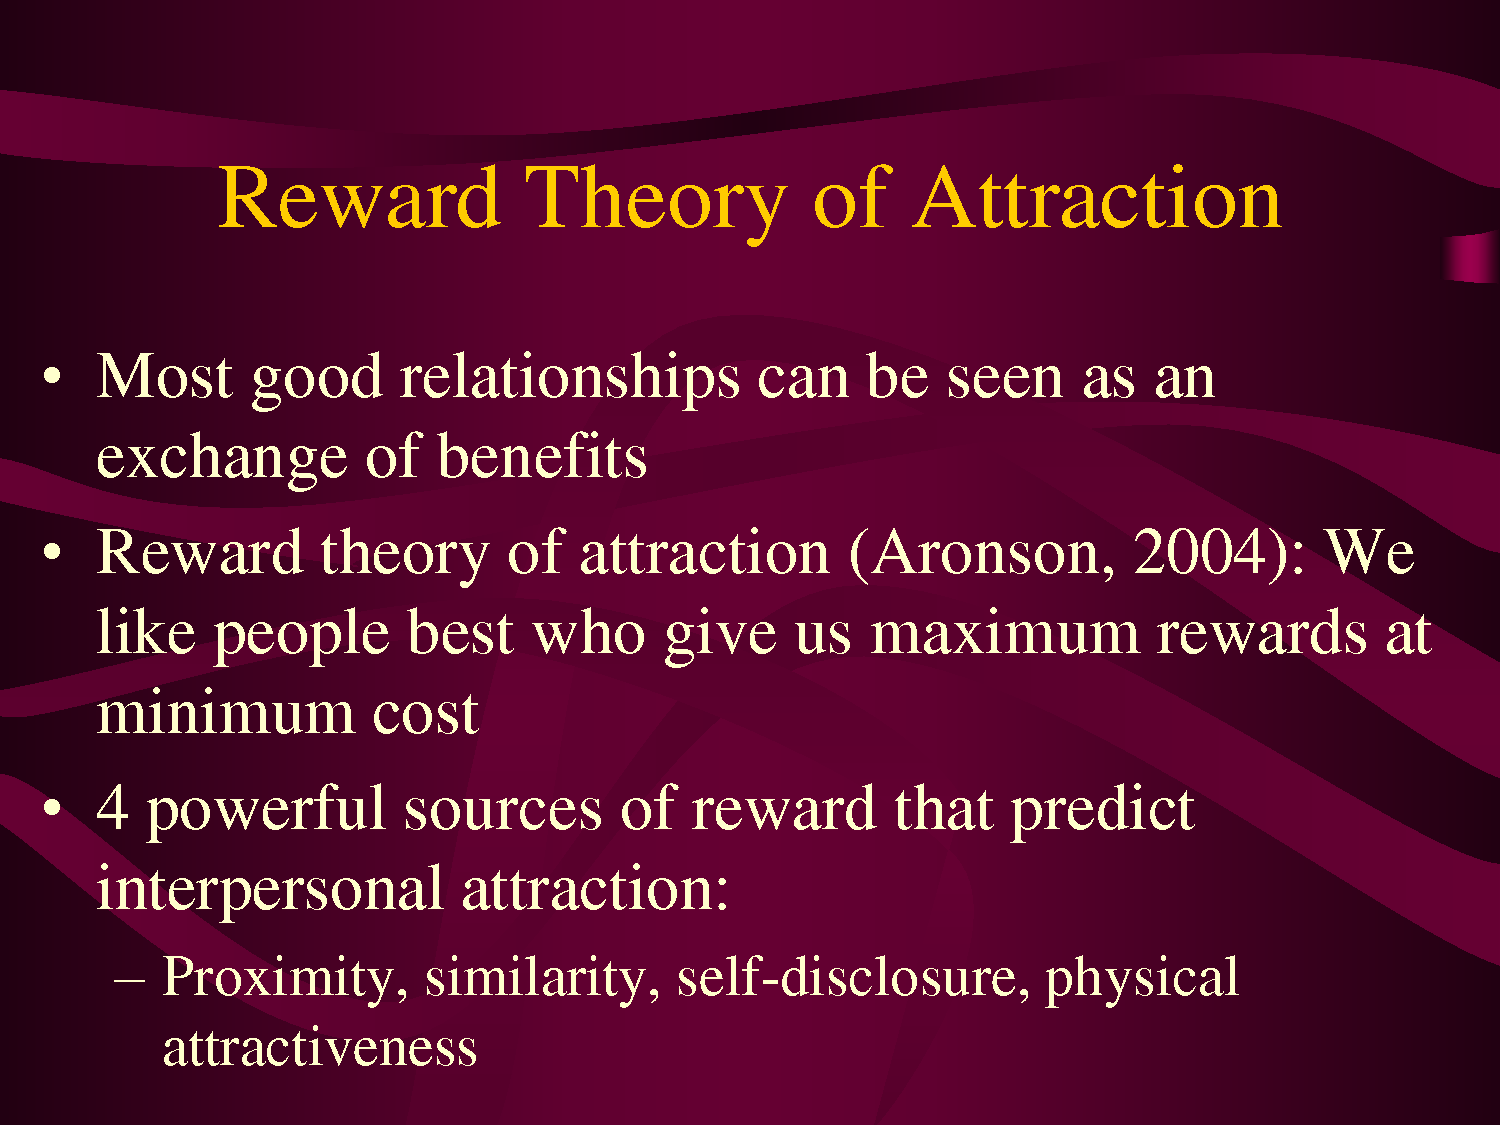 These Are Interesting Point About The Benefit From Interpersonal Attraction Physical Essay Relationship